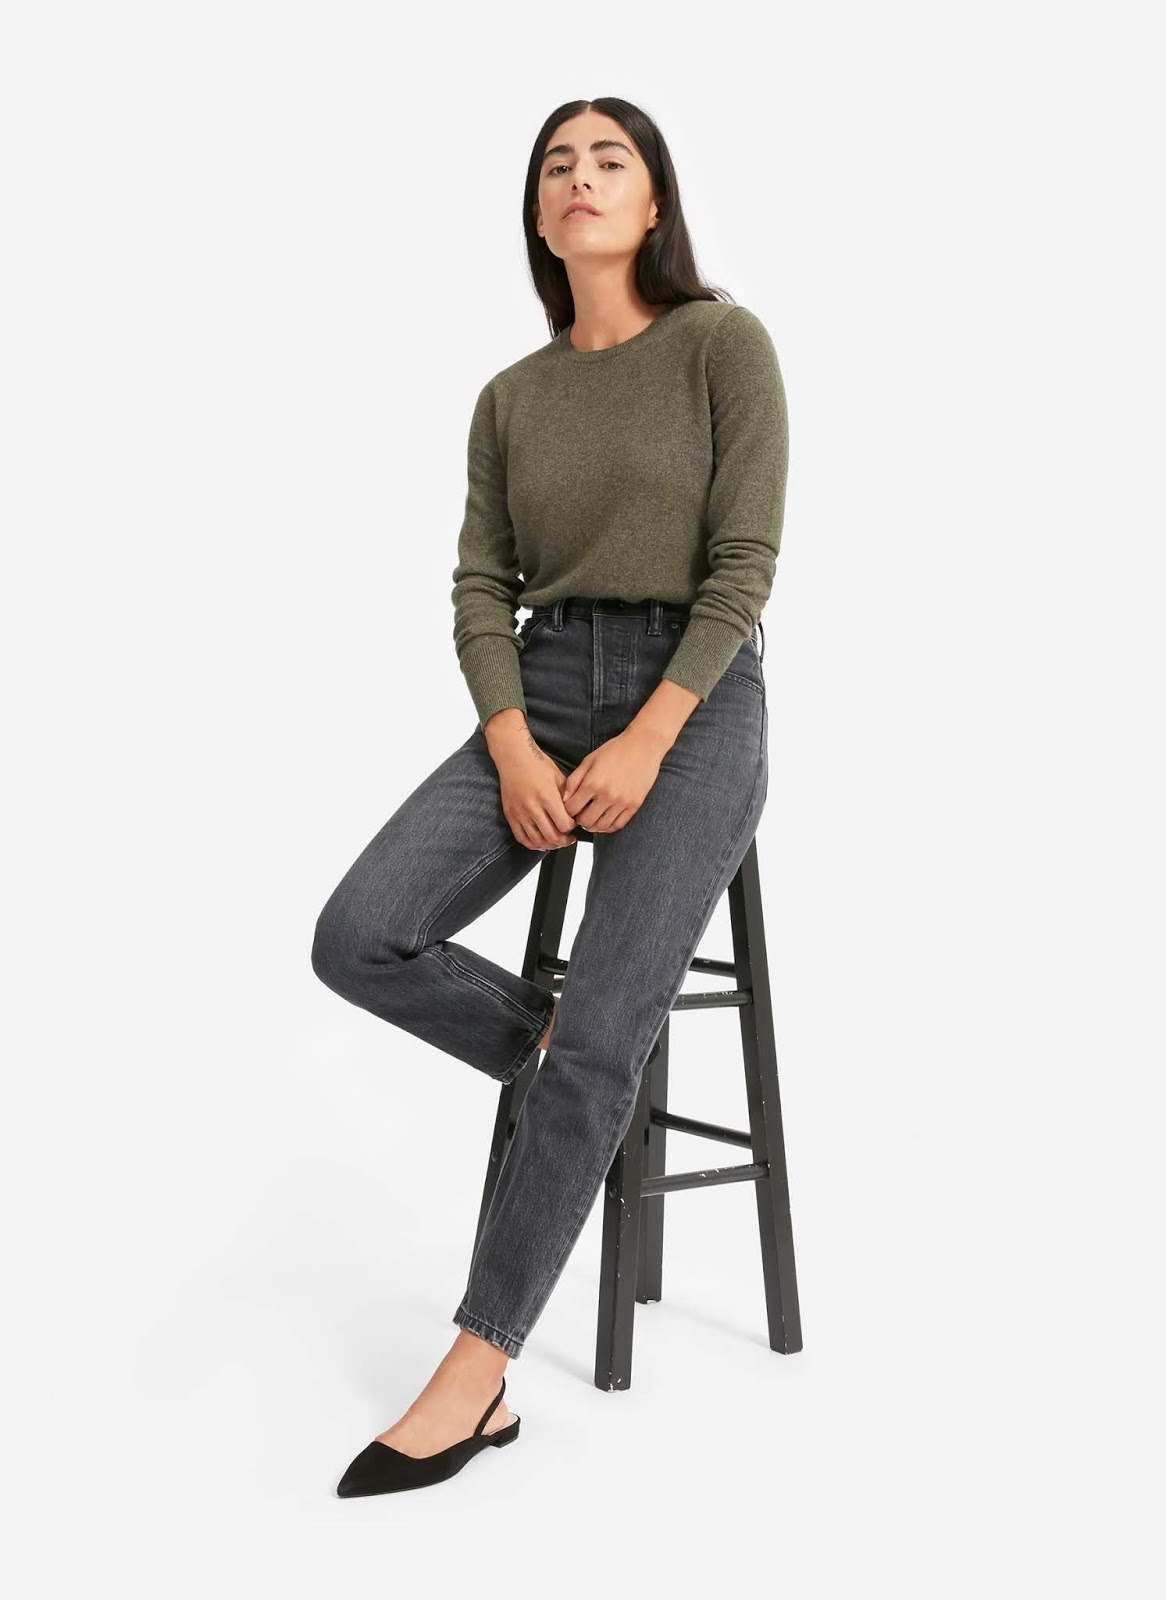 Stylish Fall Outfit Inspiration — Everlane Sweater, Jeans, and Flats